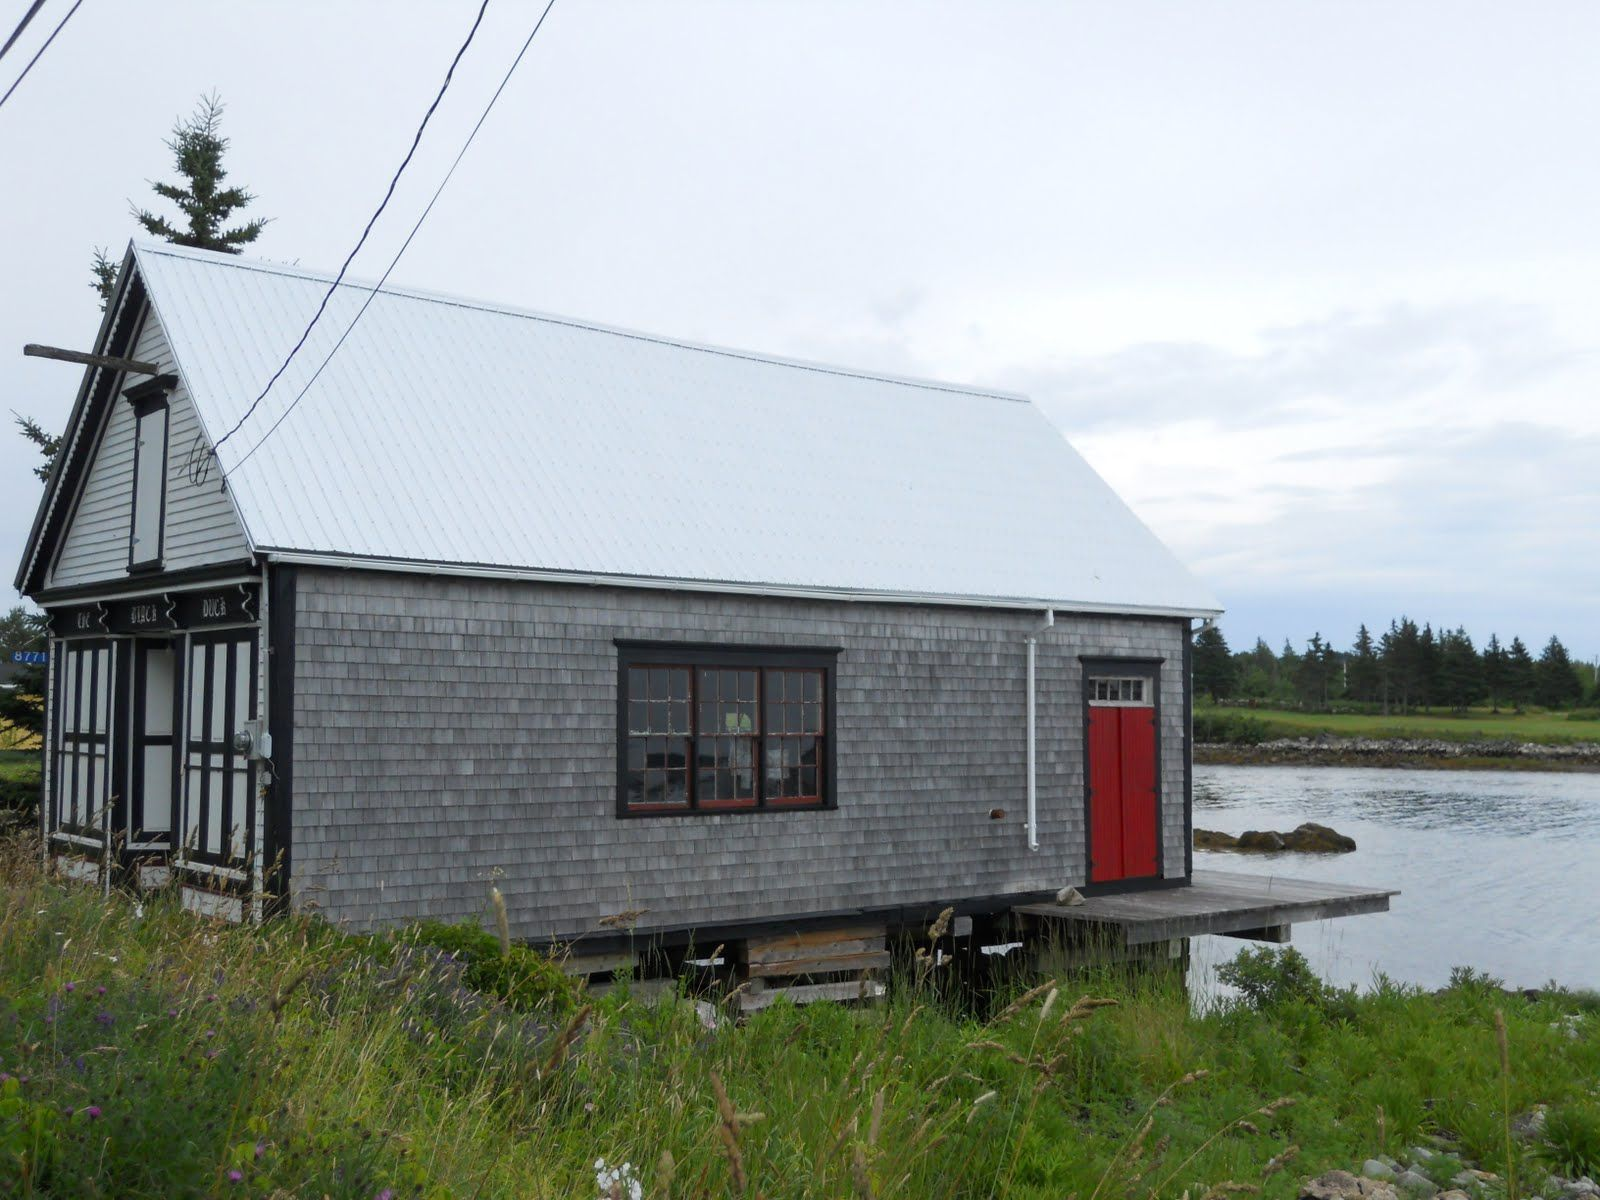 The Black Duck - Vogler's Cove, NS